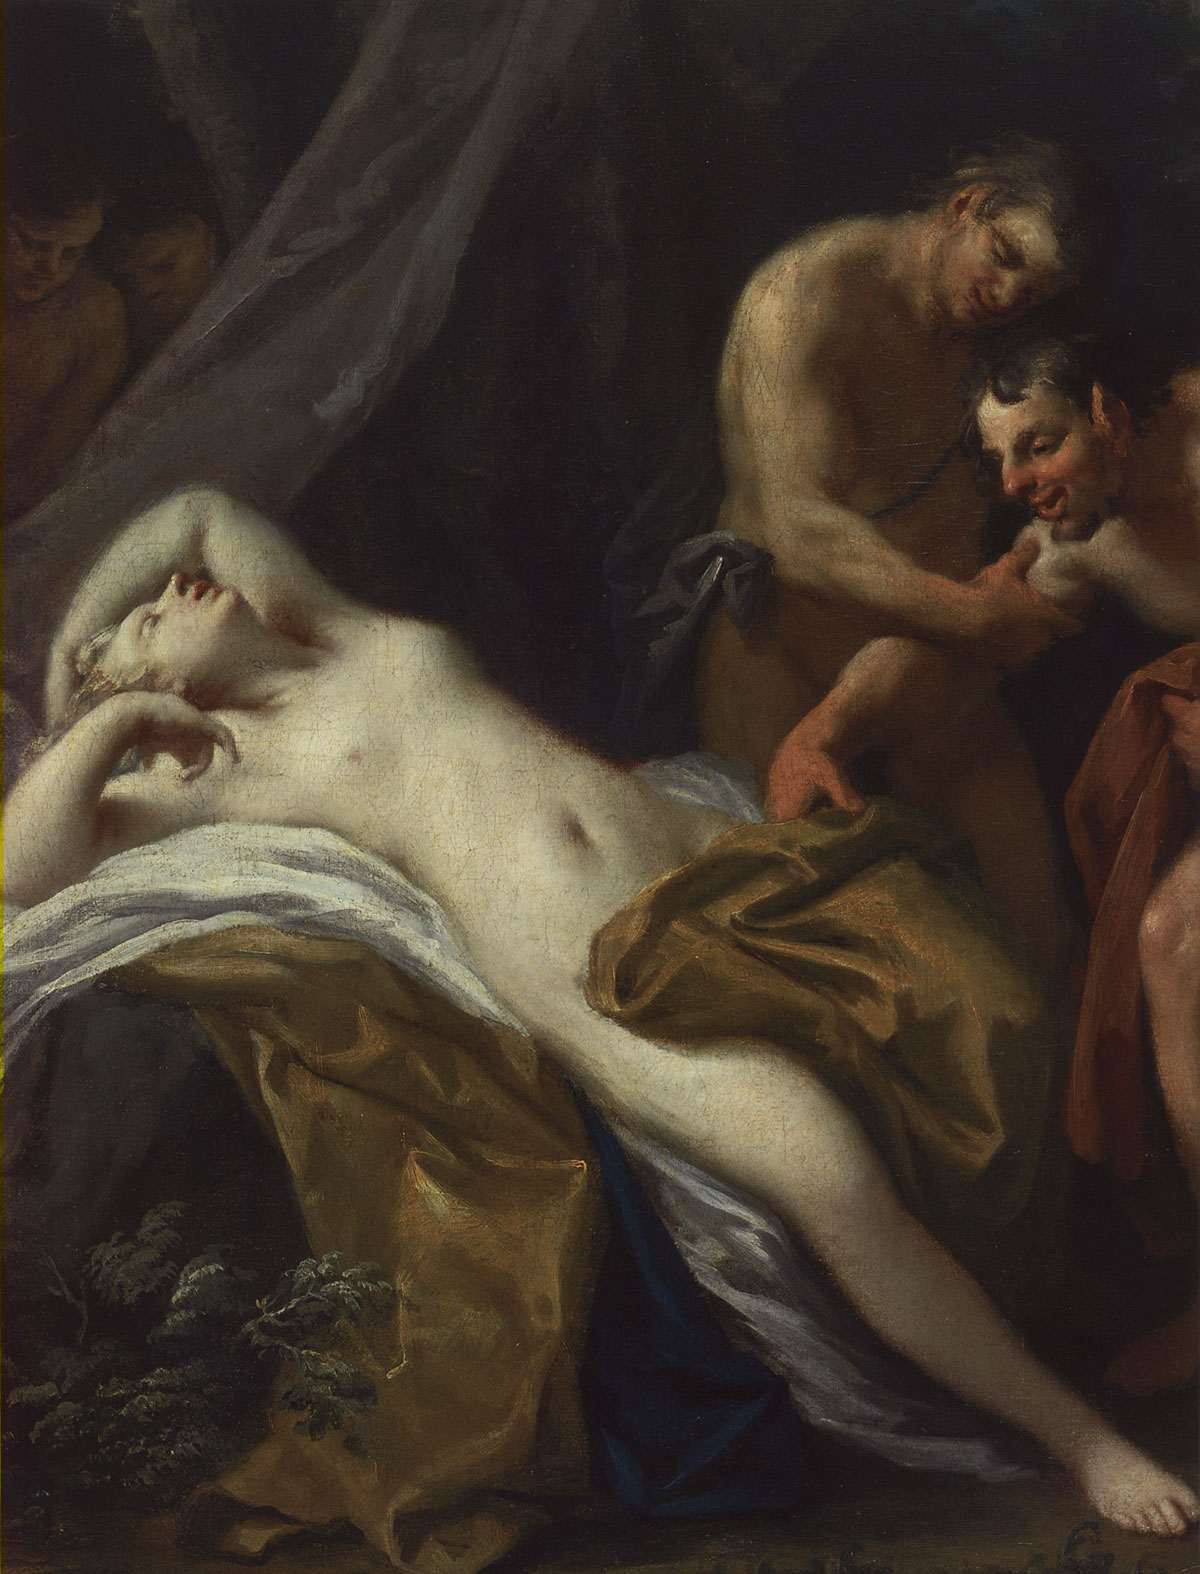 Satyr and asleep nymph. Fragment Jacopo Amigoni (1682—1752). Oil on canvas. 1730s. 100 × 125 cm. Inv. No. ГЭ 10369. Saint Petersburg, The State Hermitage Museum